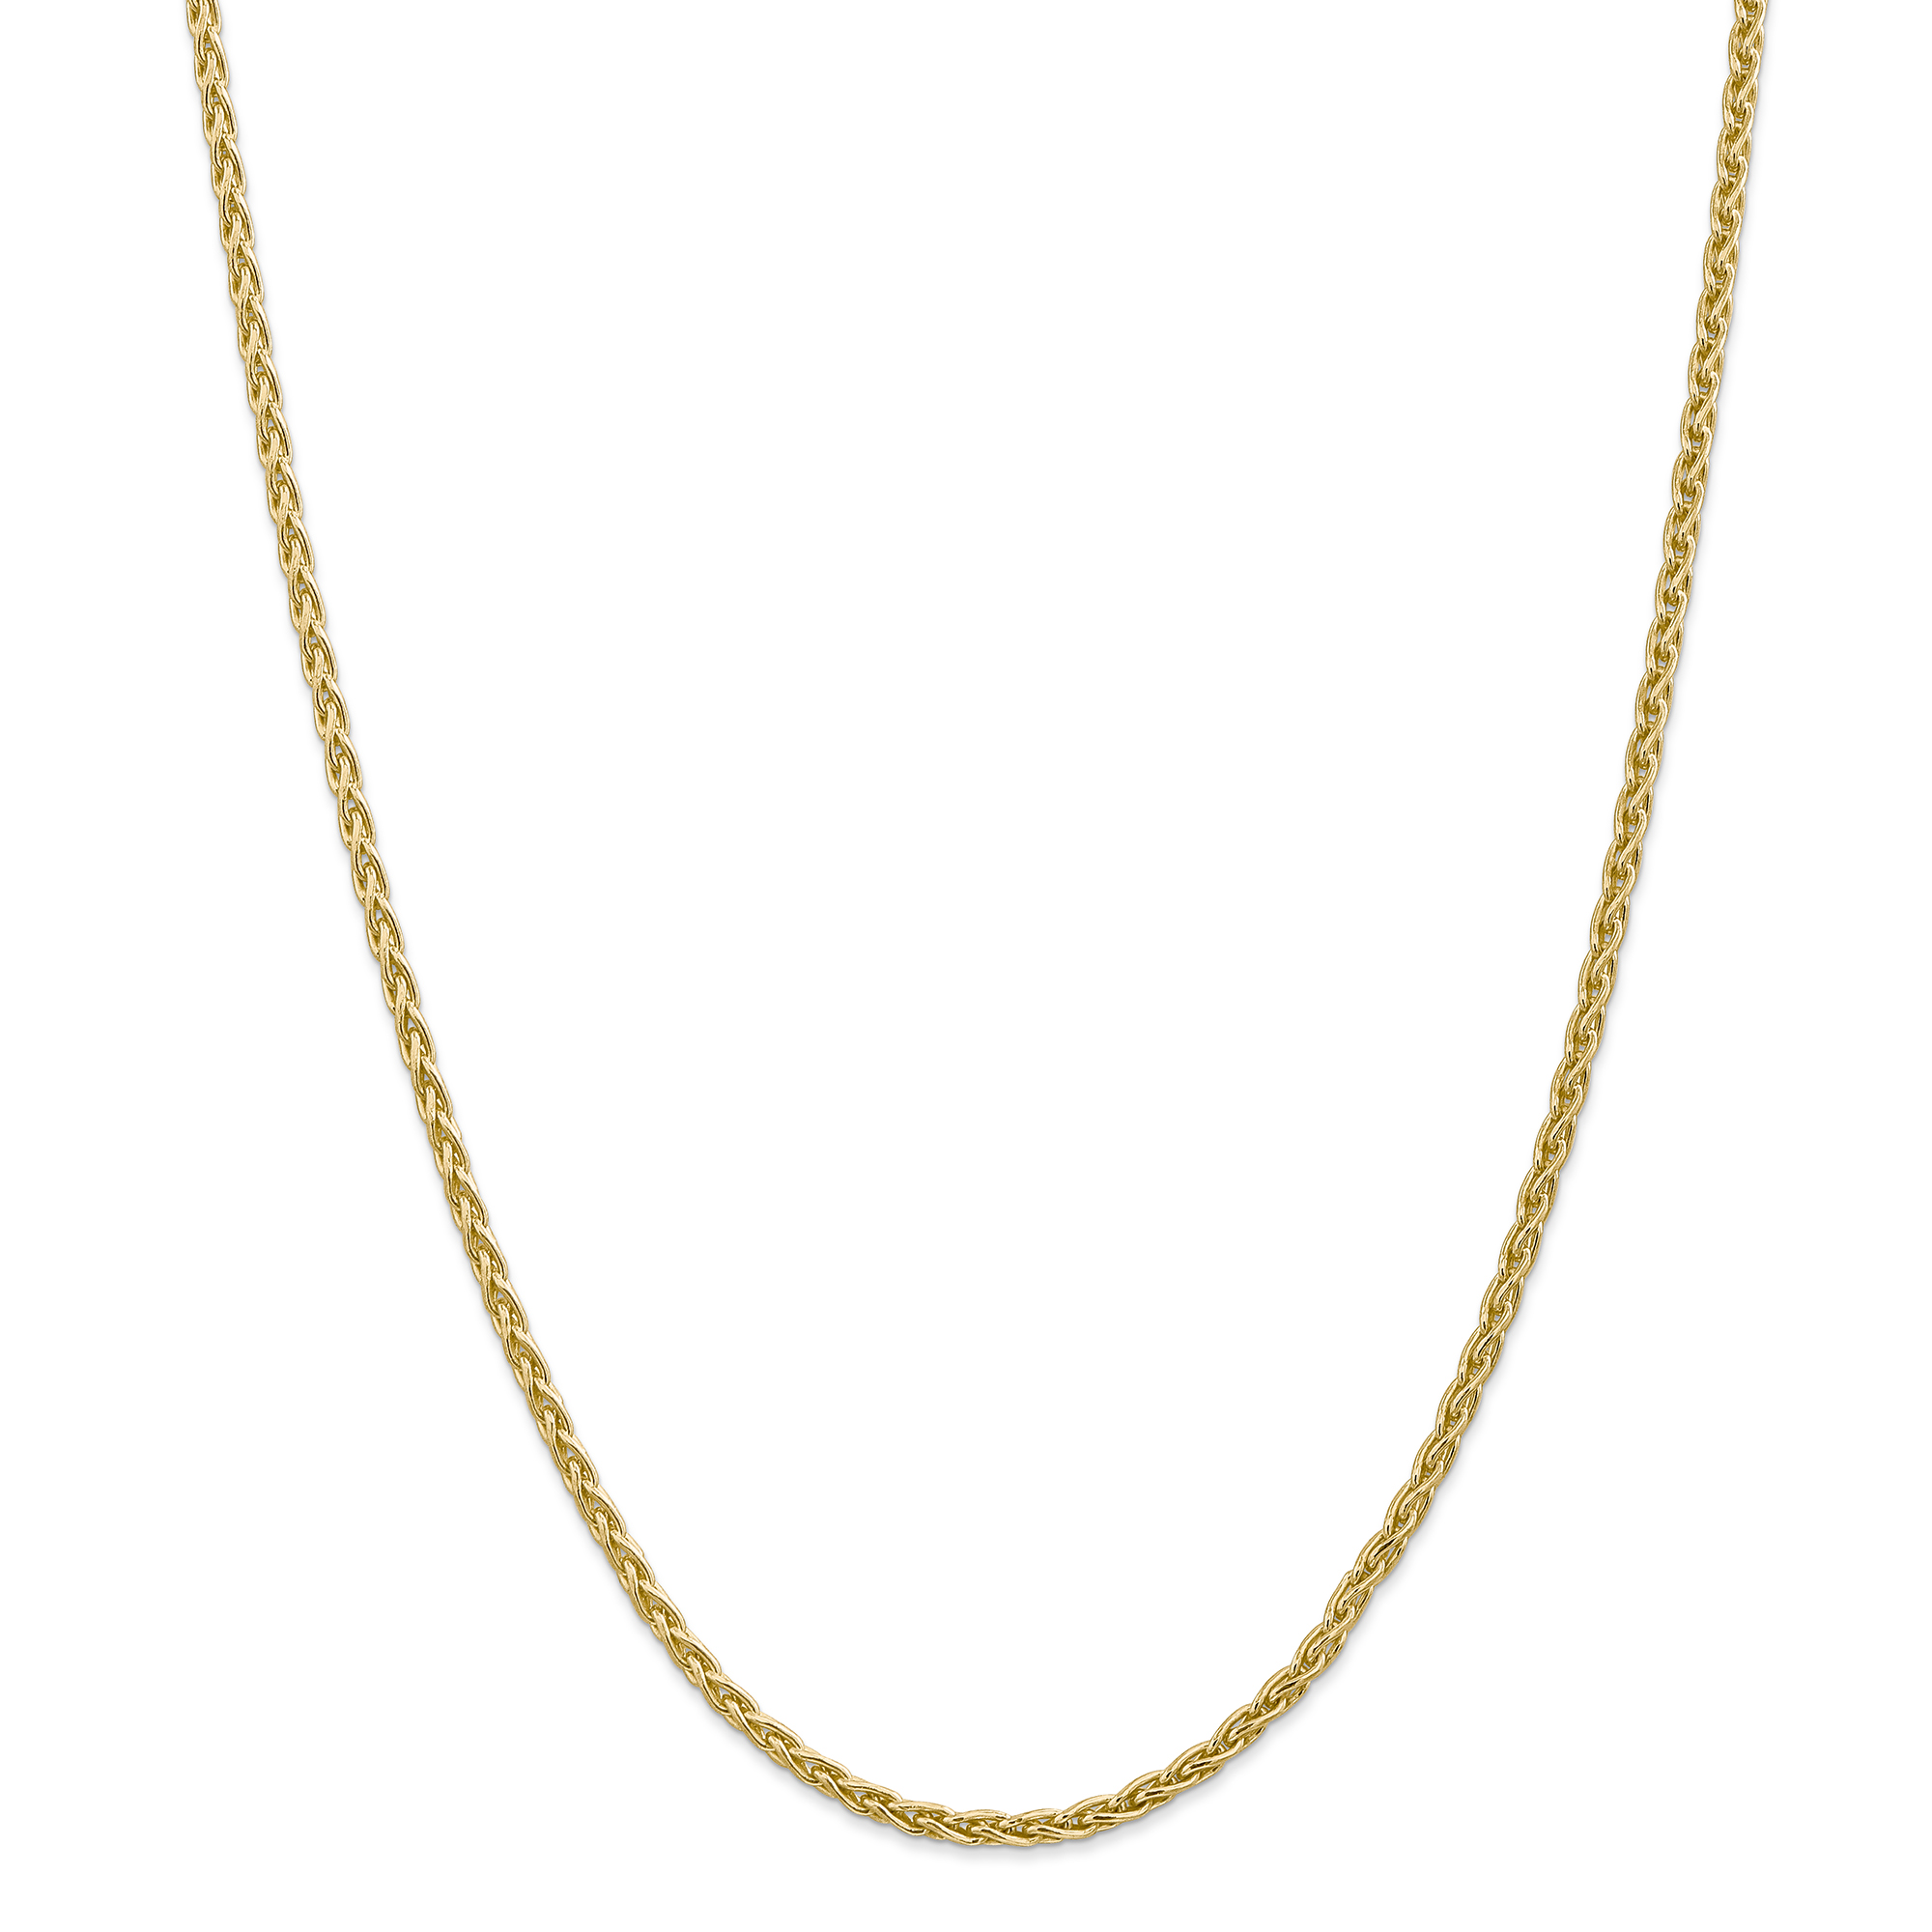 14K Yellow Gold 3mm Parisian Wheat Chain 30 Inch - image 5 de 5